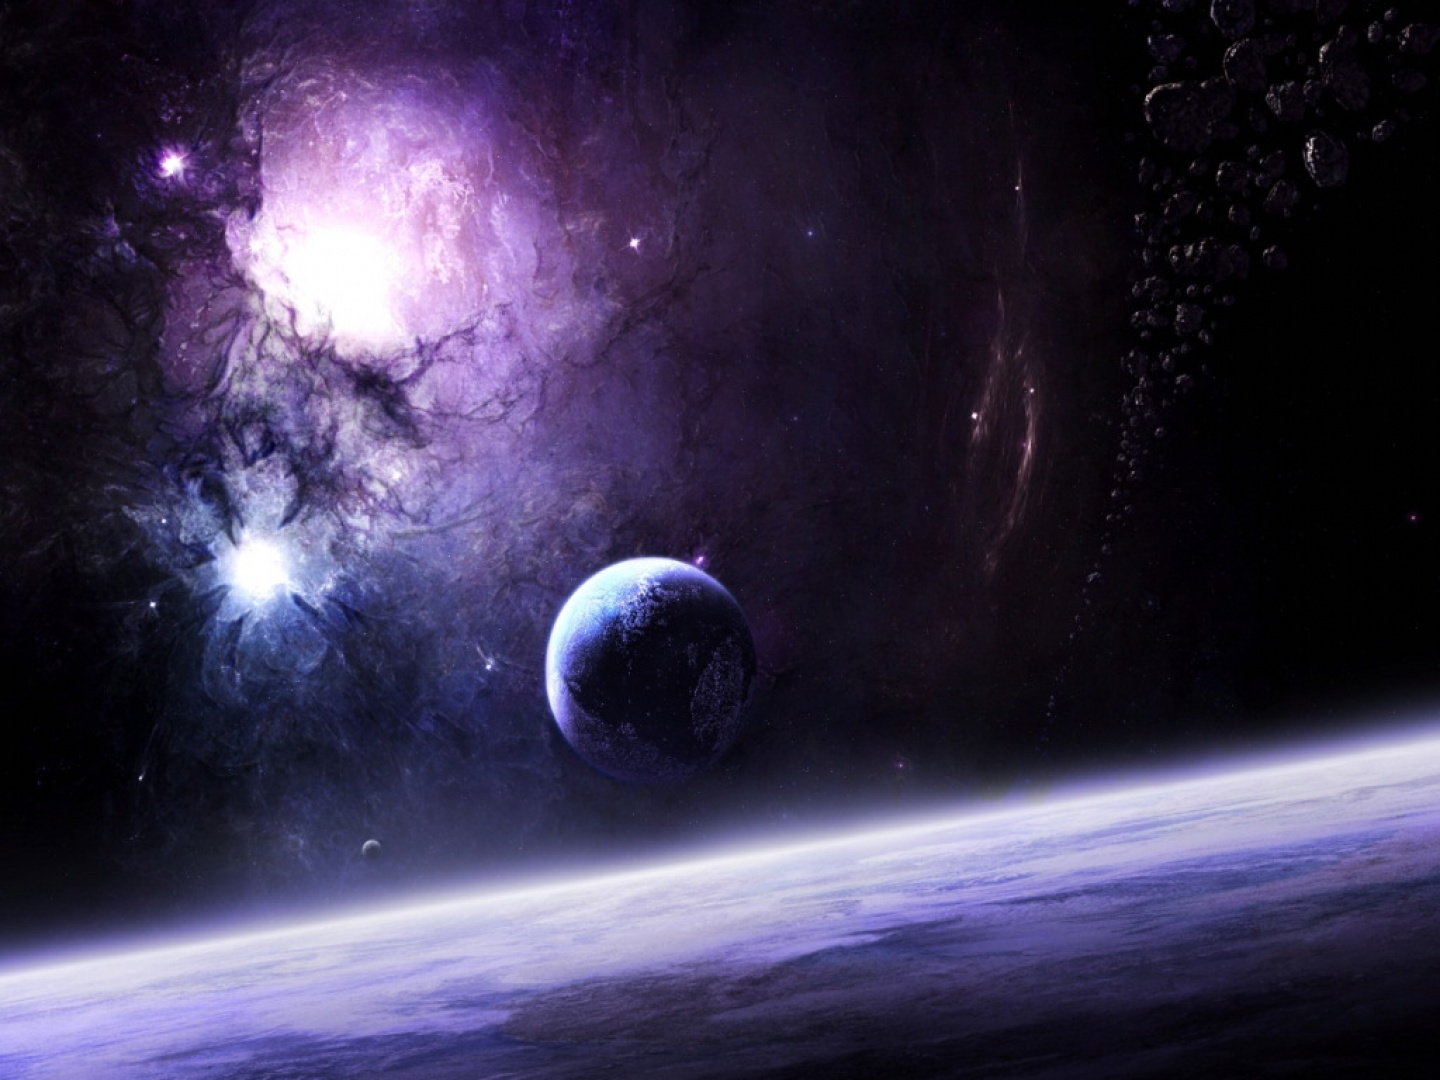 10 Best Space Hd Wallpapers 1080p Widescreen Full Hd 1080p: Violetas: UNIVERSO OBSERVABLE